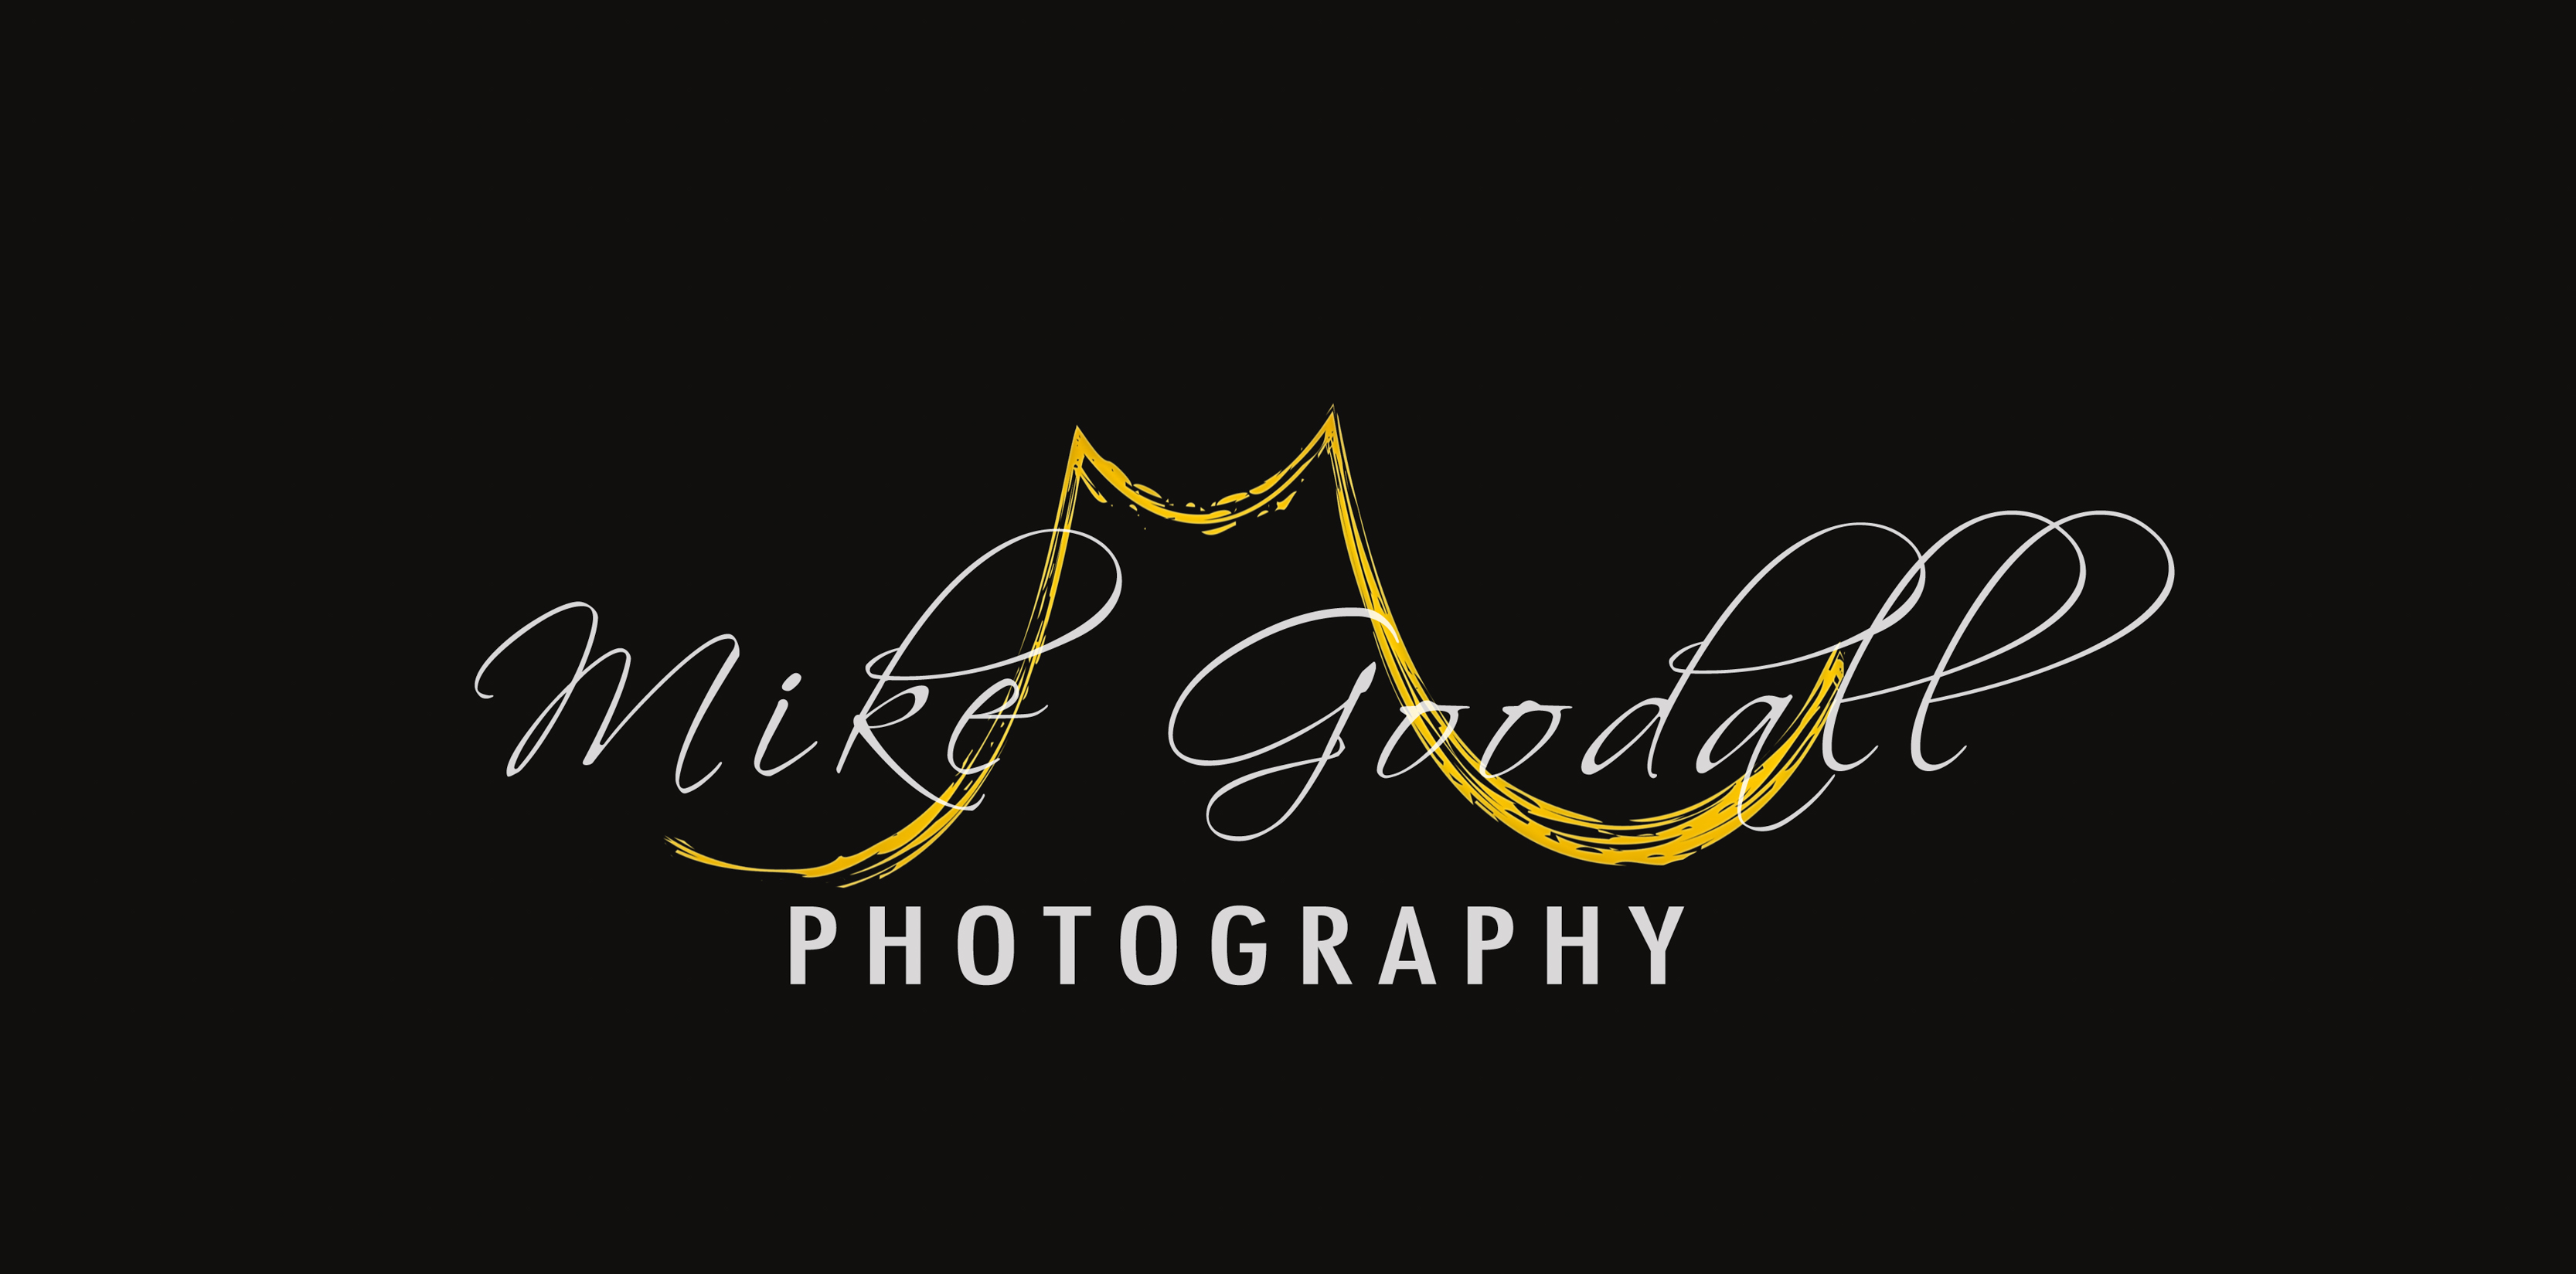 Mike Goodall Photography